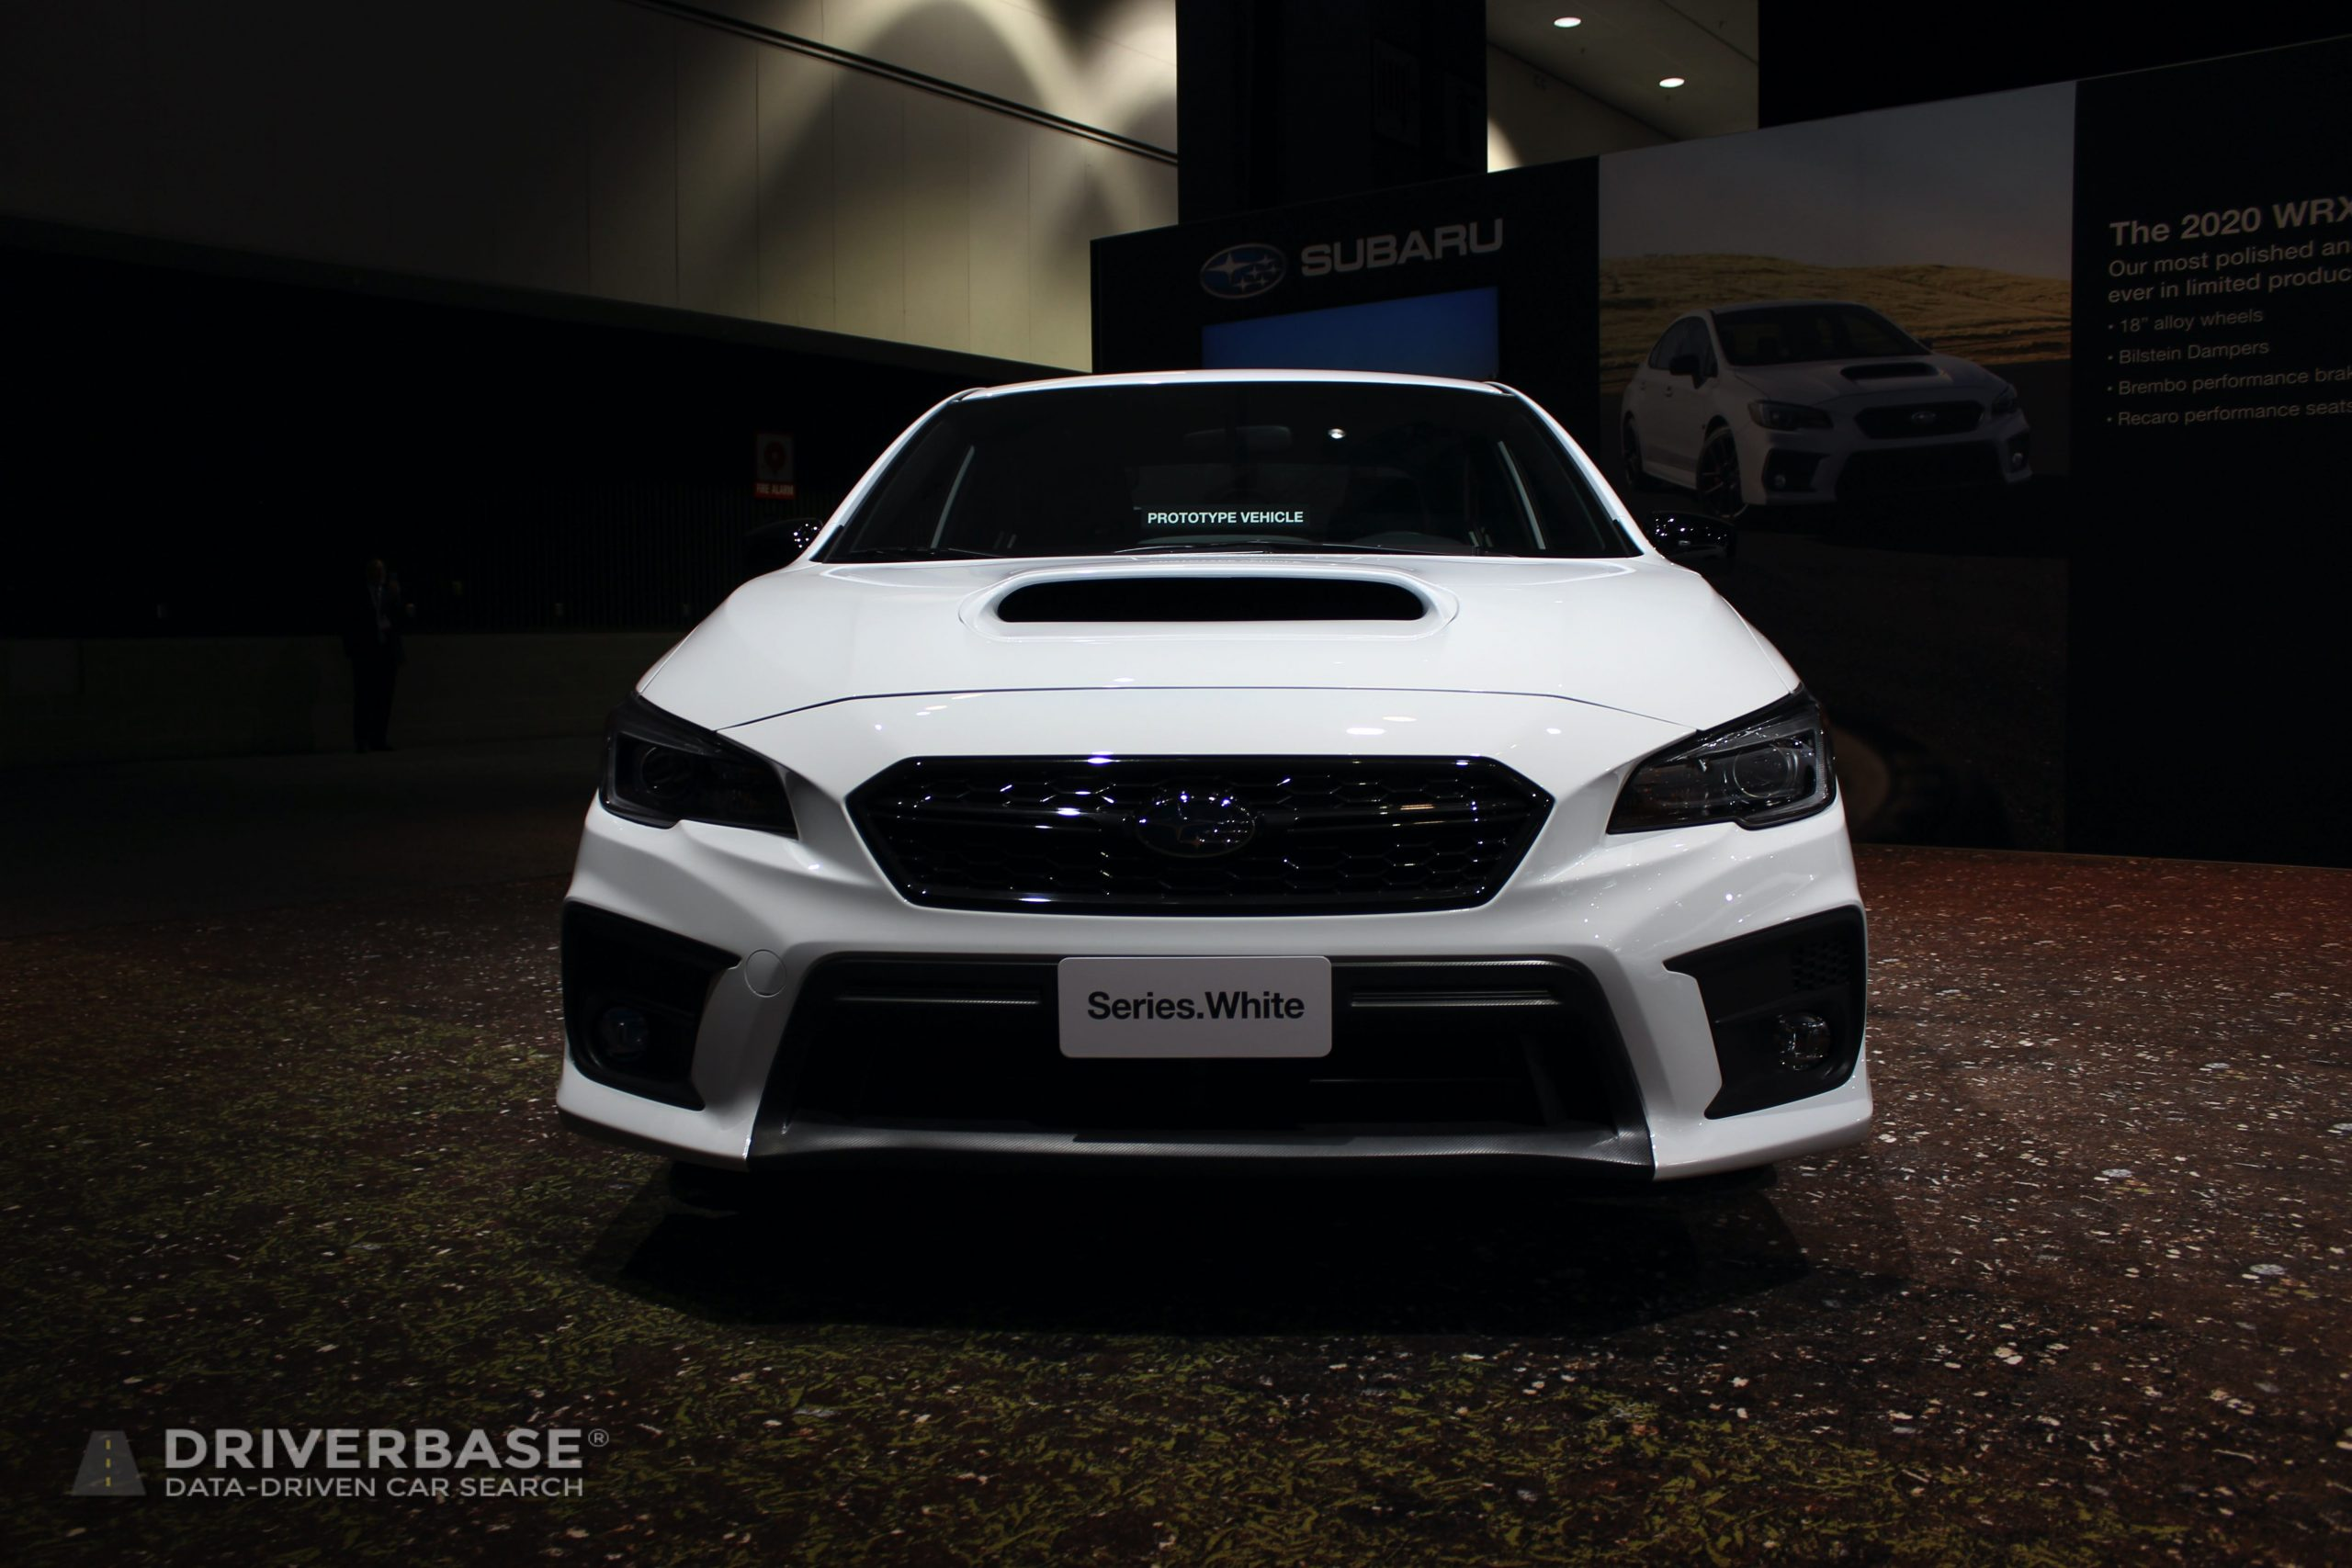 2020 Subaru WRX Series White at the 2019 Los Angeles Auto Show